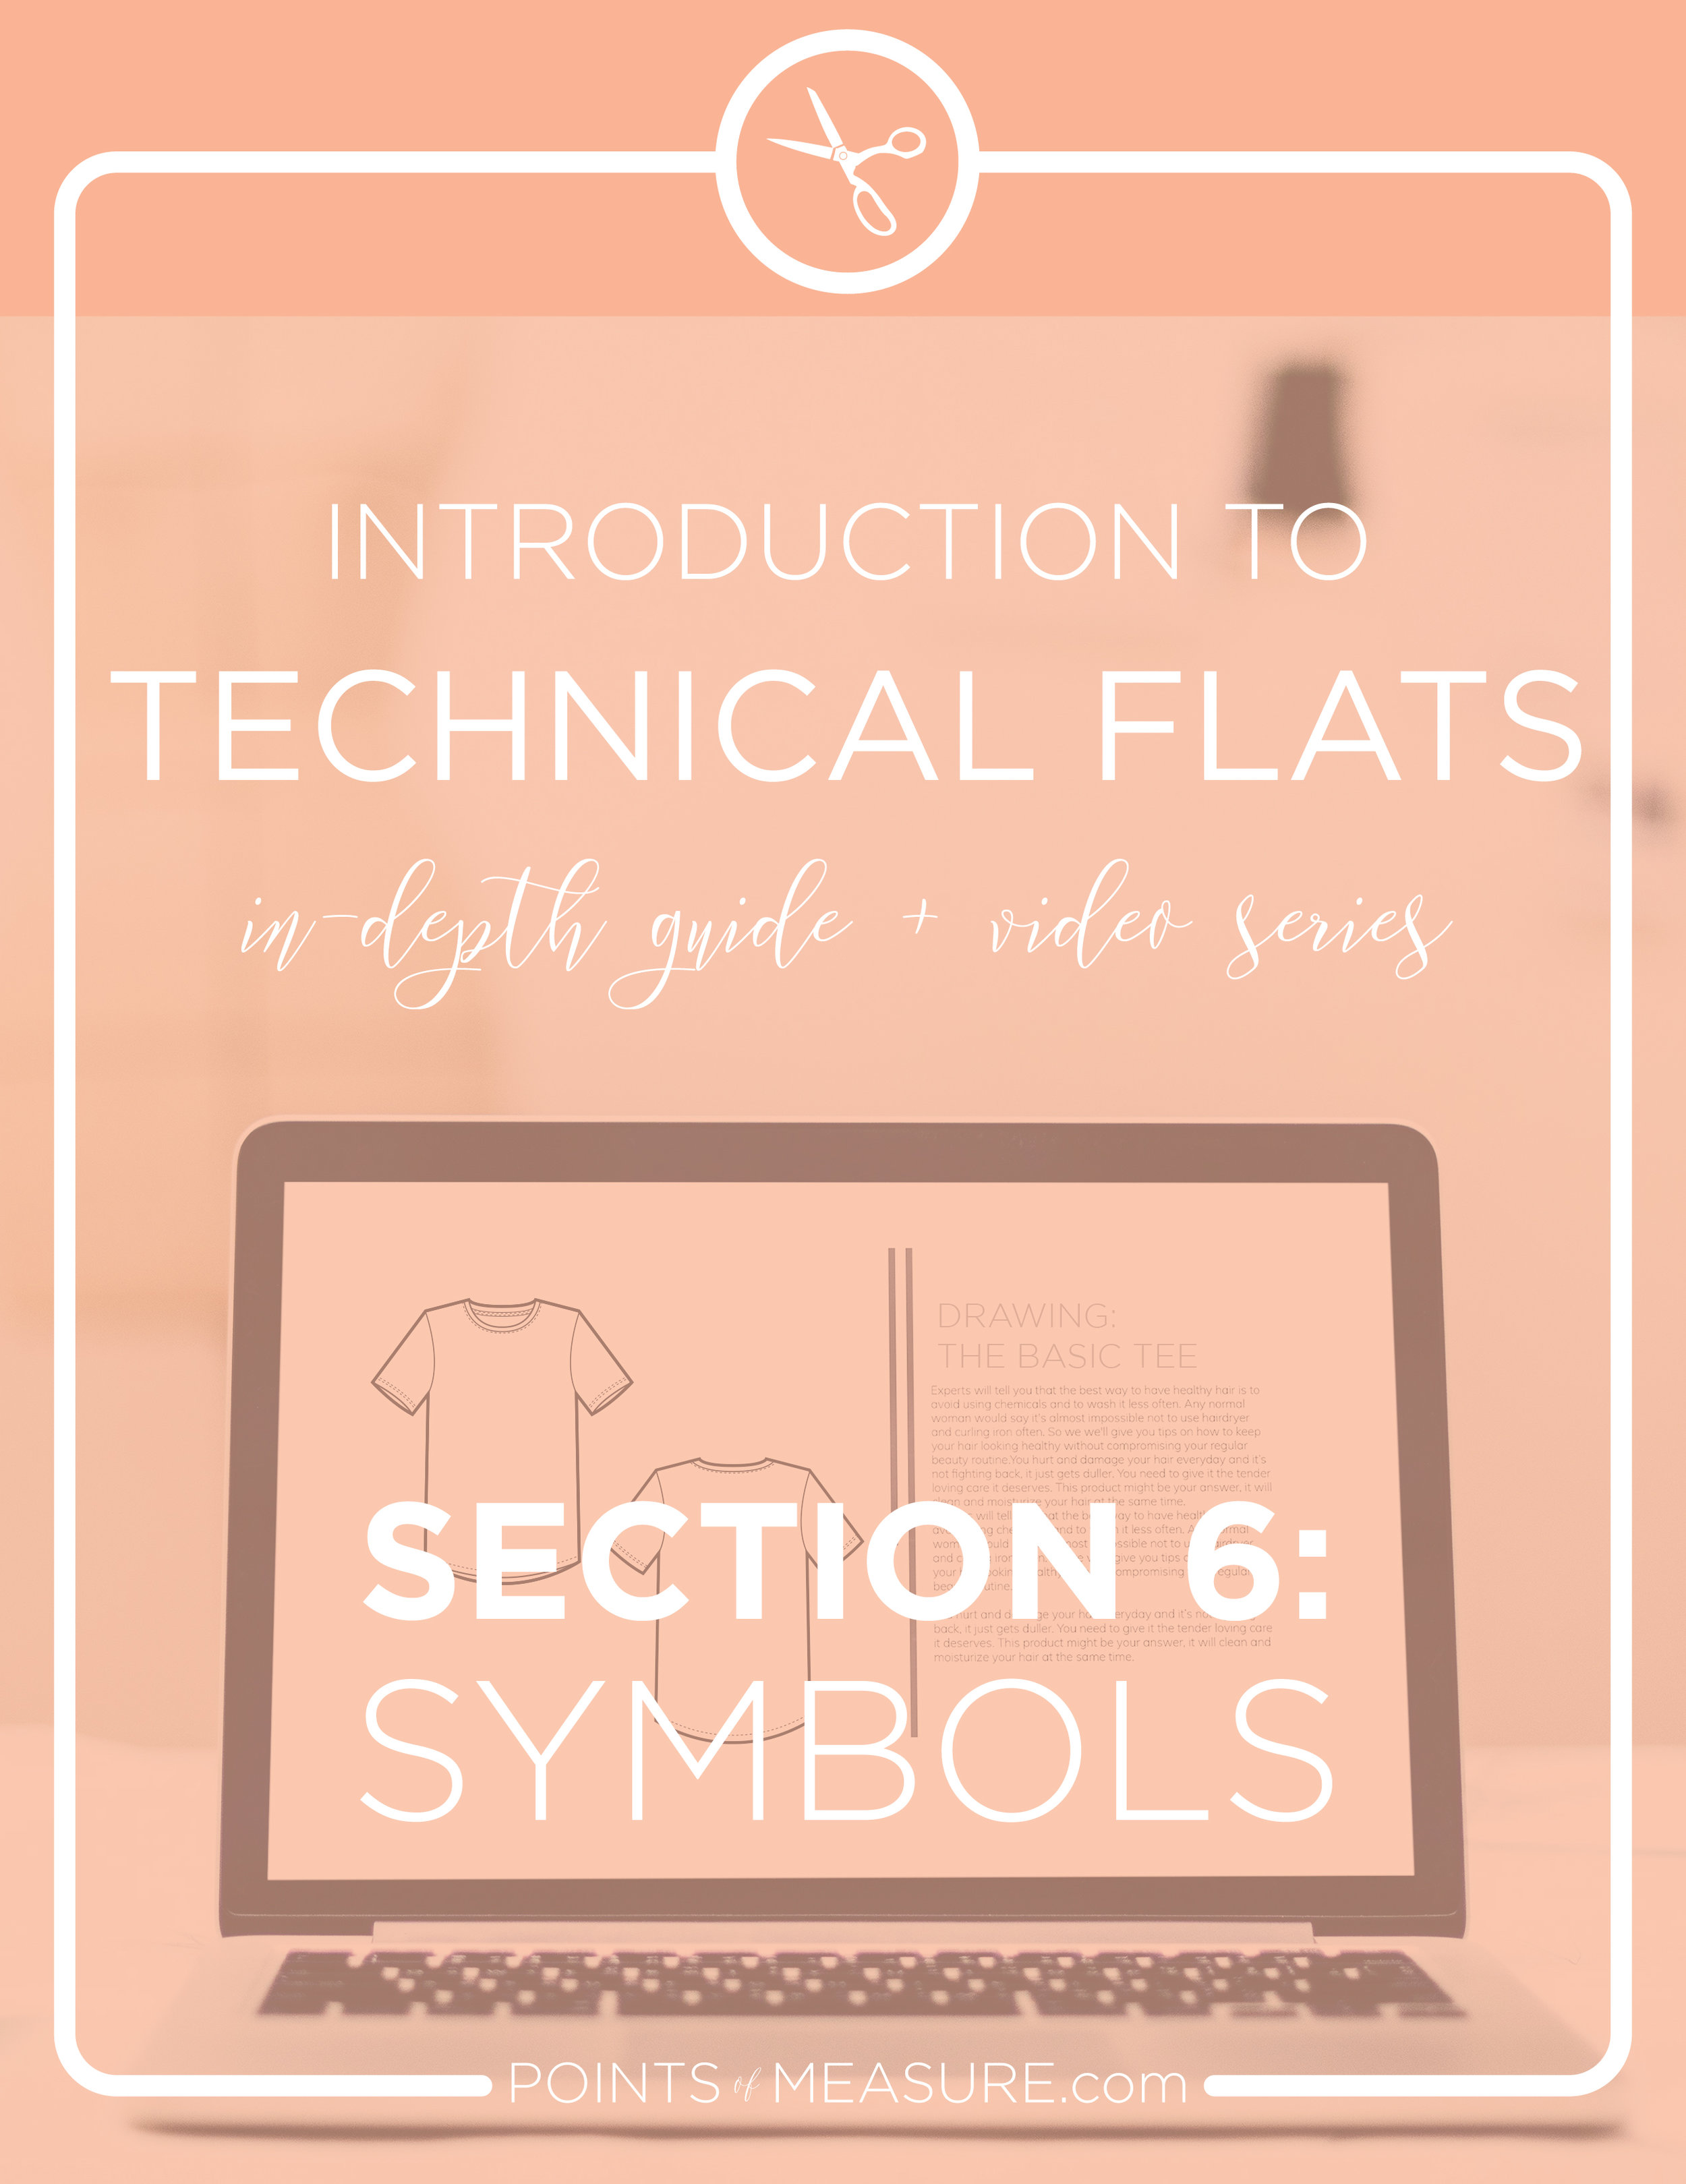 introduction-to-technical-flats-section-6-symbols-points-of-measure.jpg